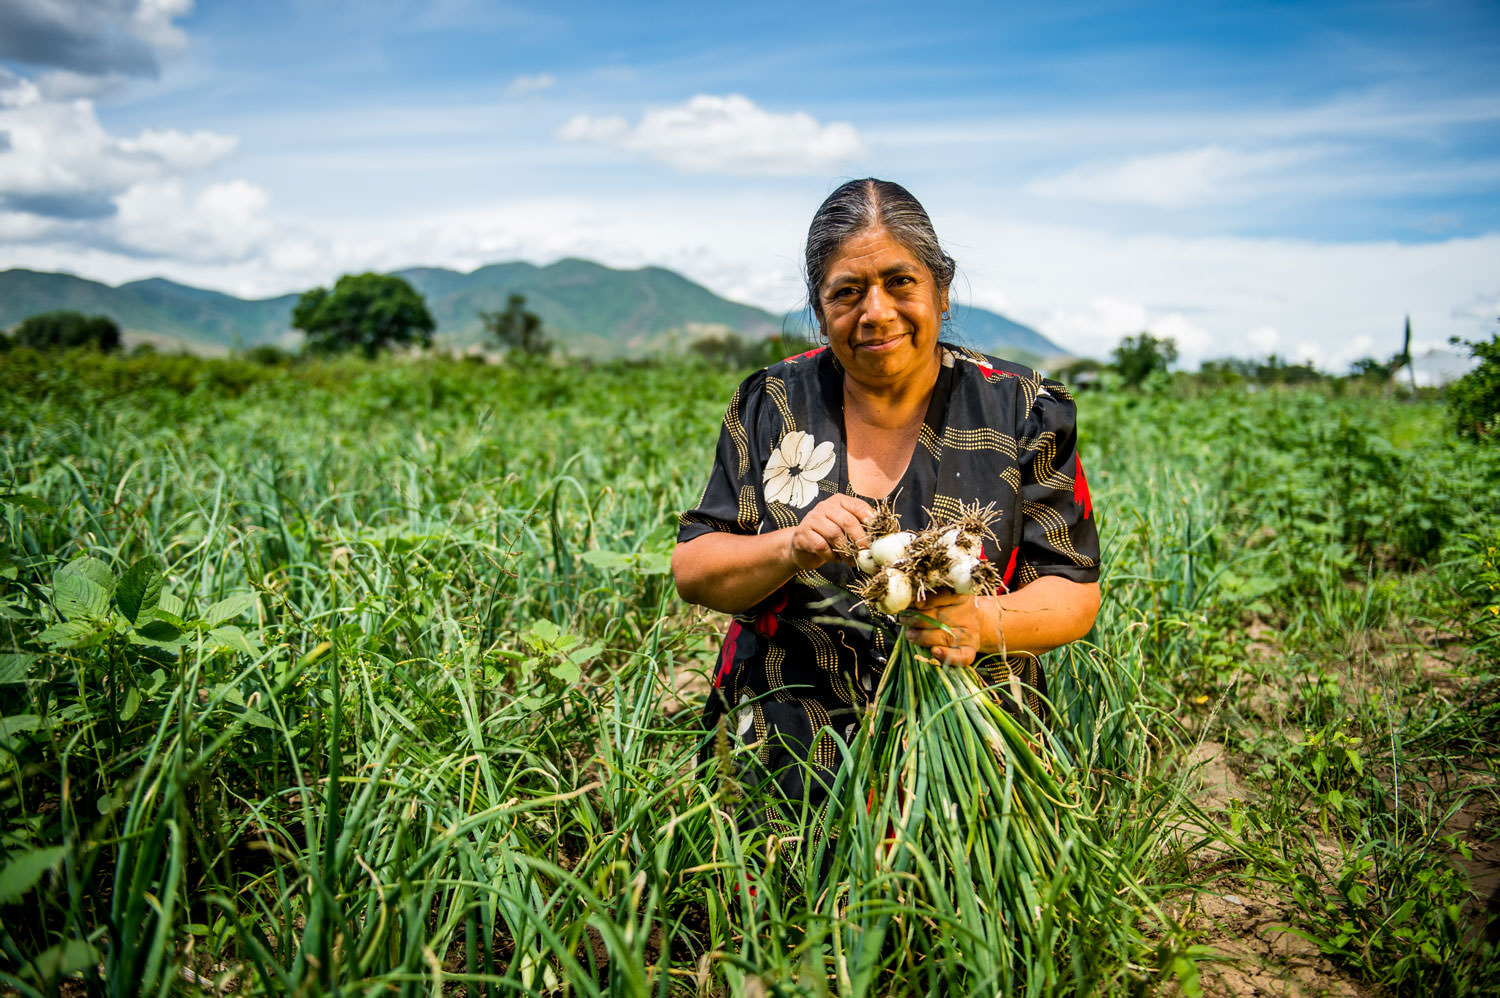 Mexican farmers are among the groups poised to benefit most from ethical finance. Image: Opmeer Reports/Oikocredit